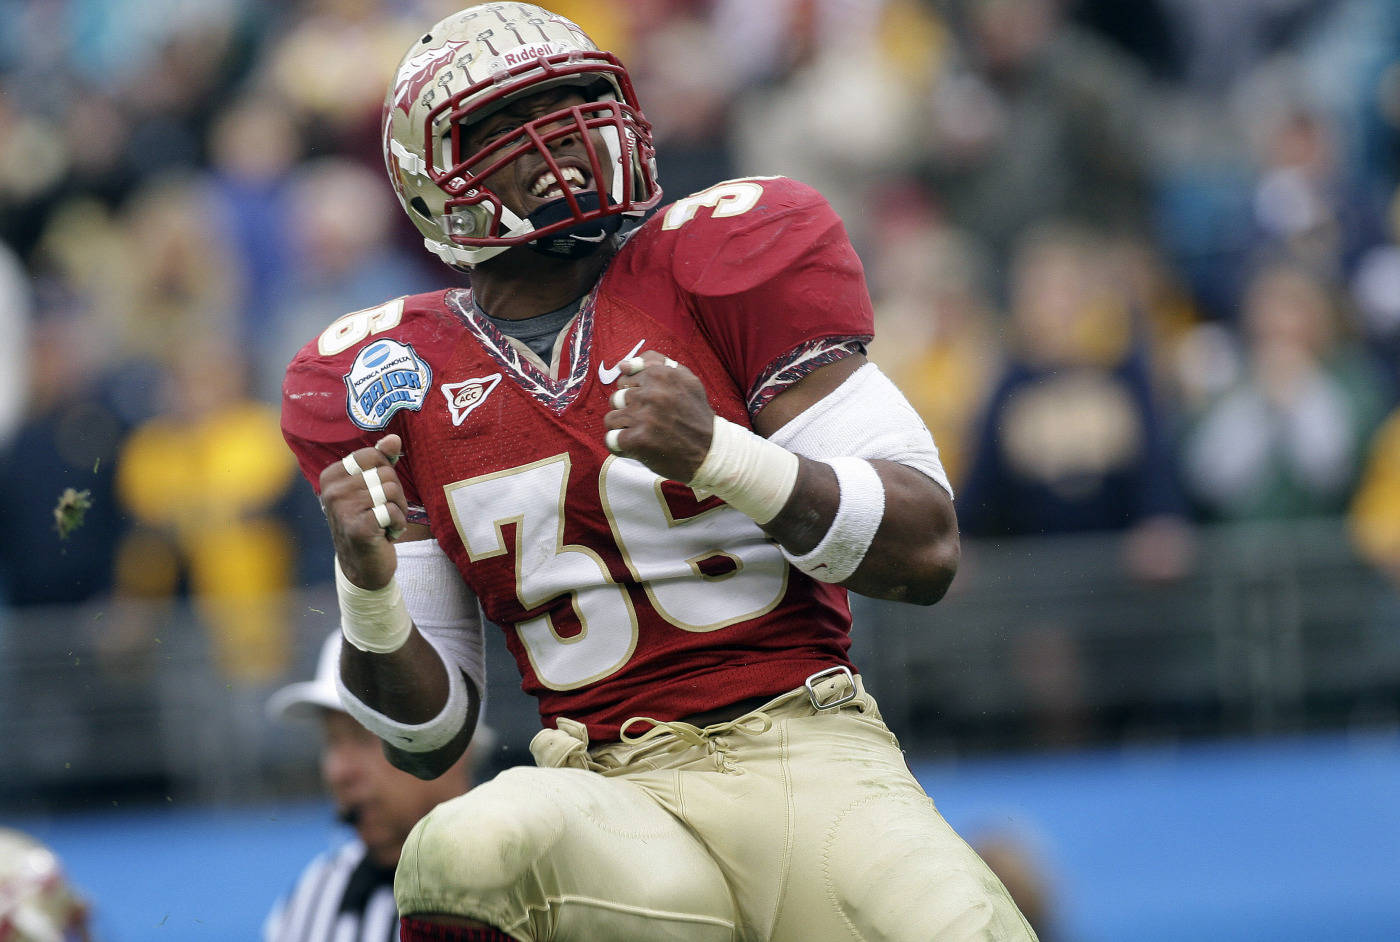 Florida State linebacker Dekoda Watson celebrates a fourth-quarter play during the Gator Bowl college football game against West Virginia, Friday, Jan. 1, 2010, in Jacksonville, Fla.  Florida State won 33-21.(AP Photo/Phil Coale)